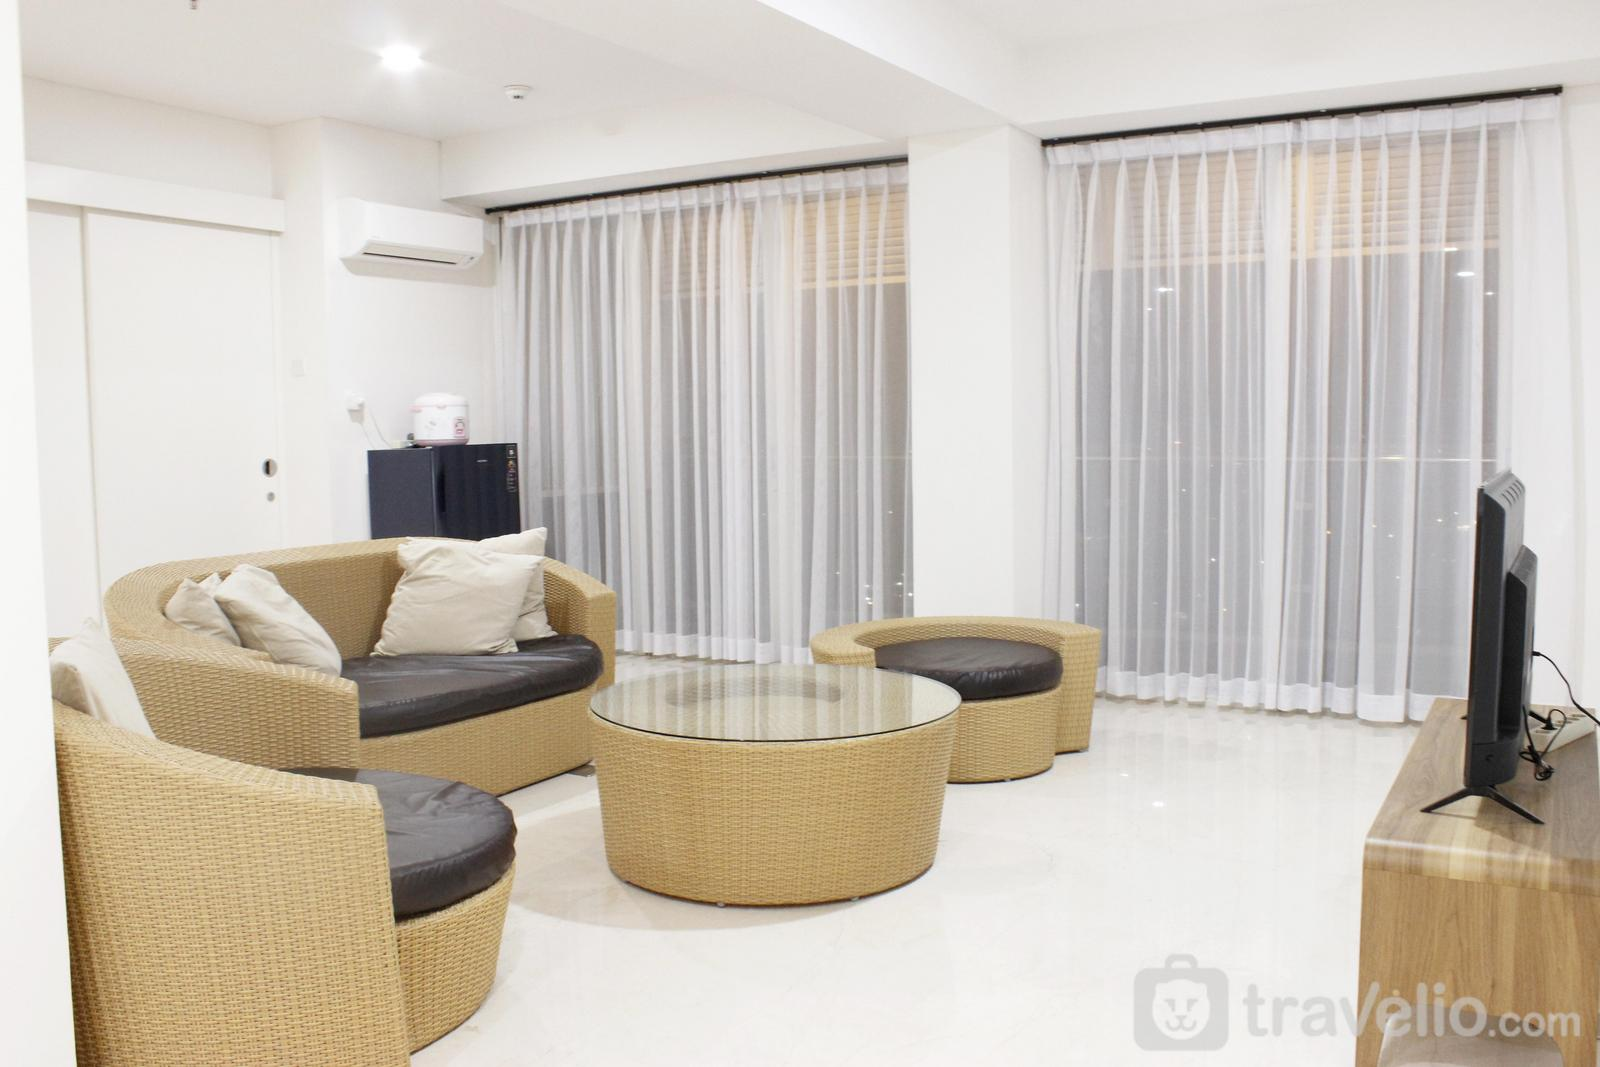 Landmark Residence - Homey 4BR Apartment at Landmark Residence By Travelio